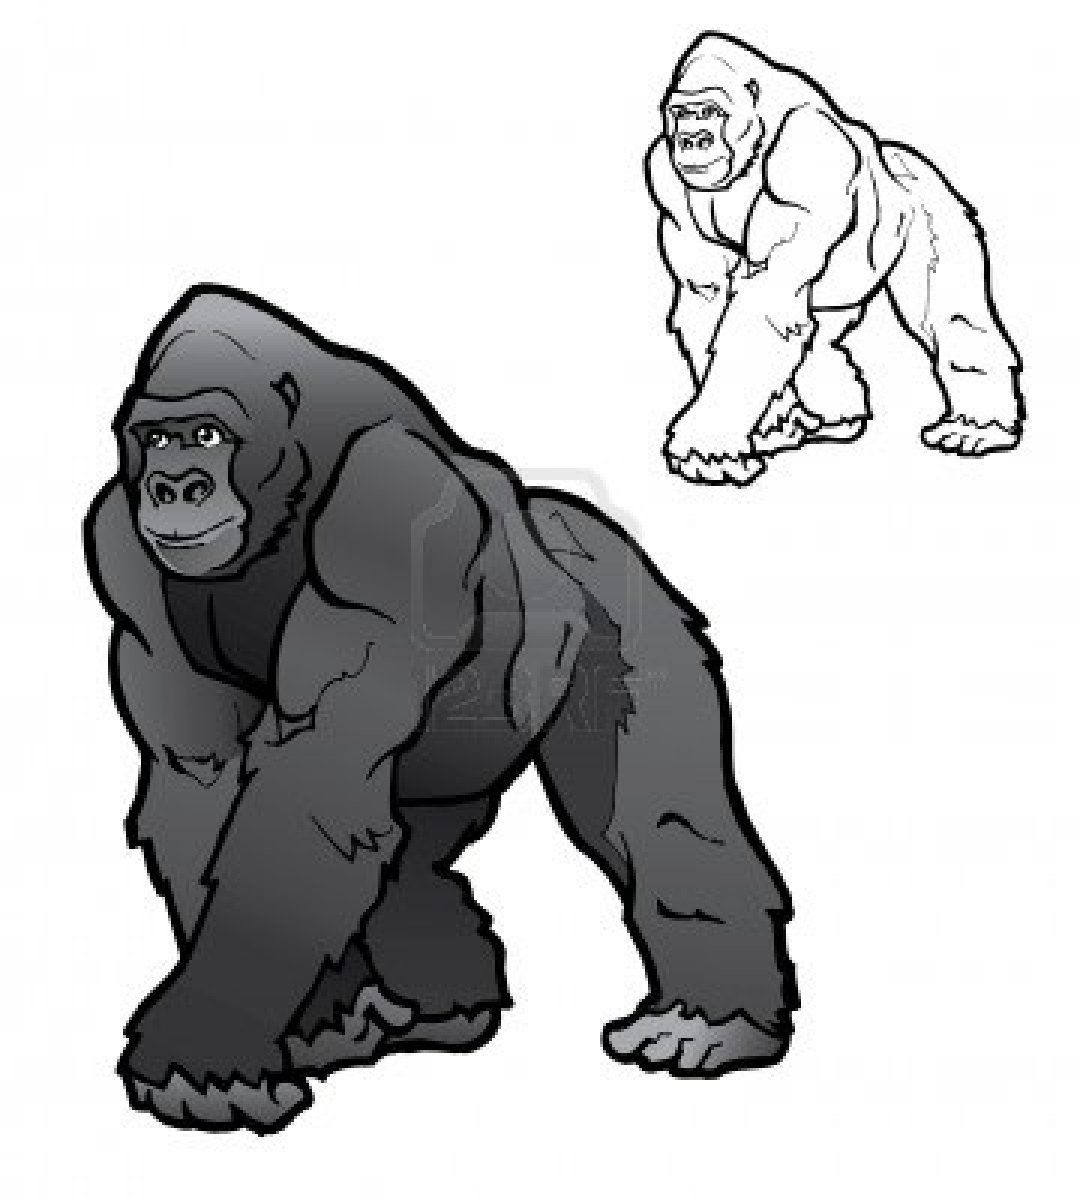 Ape clipart silverback gorilla. The one and only